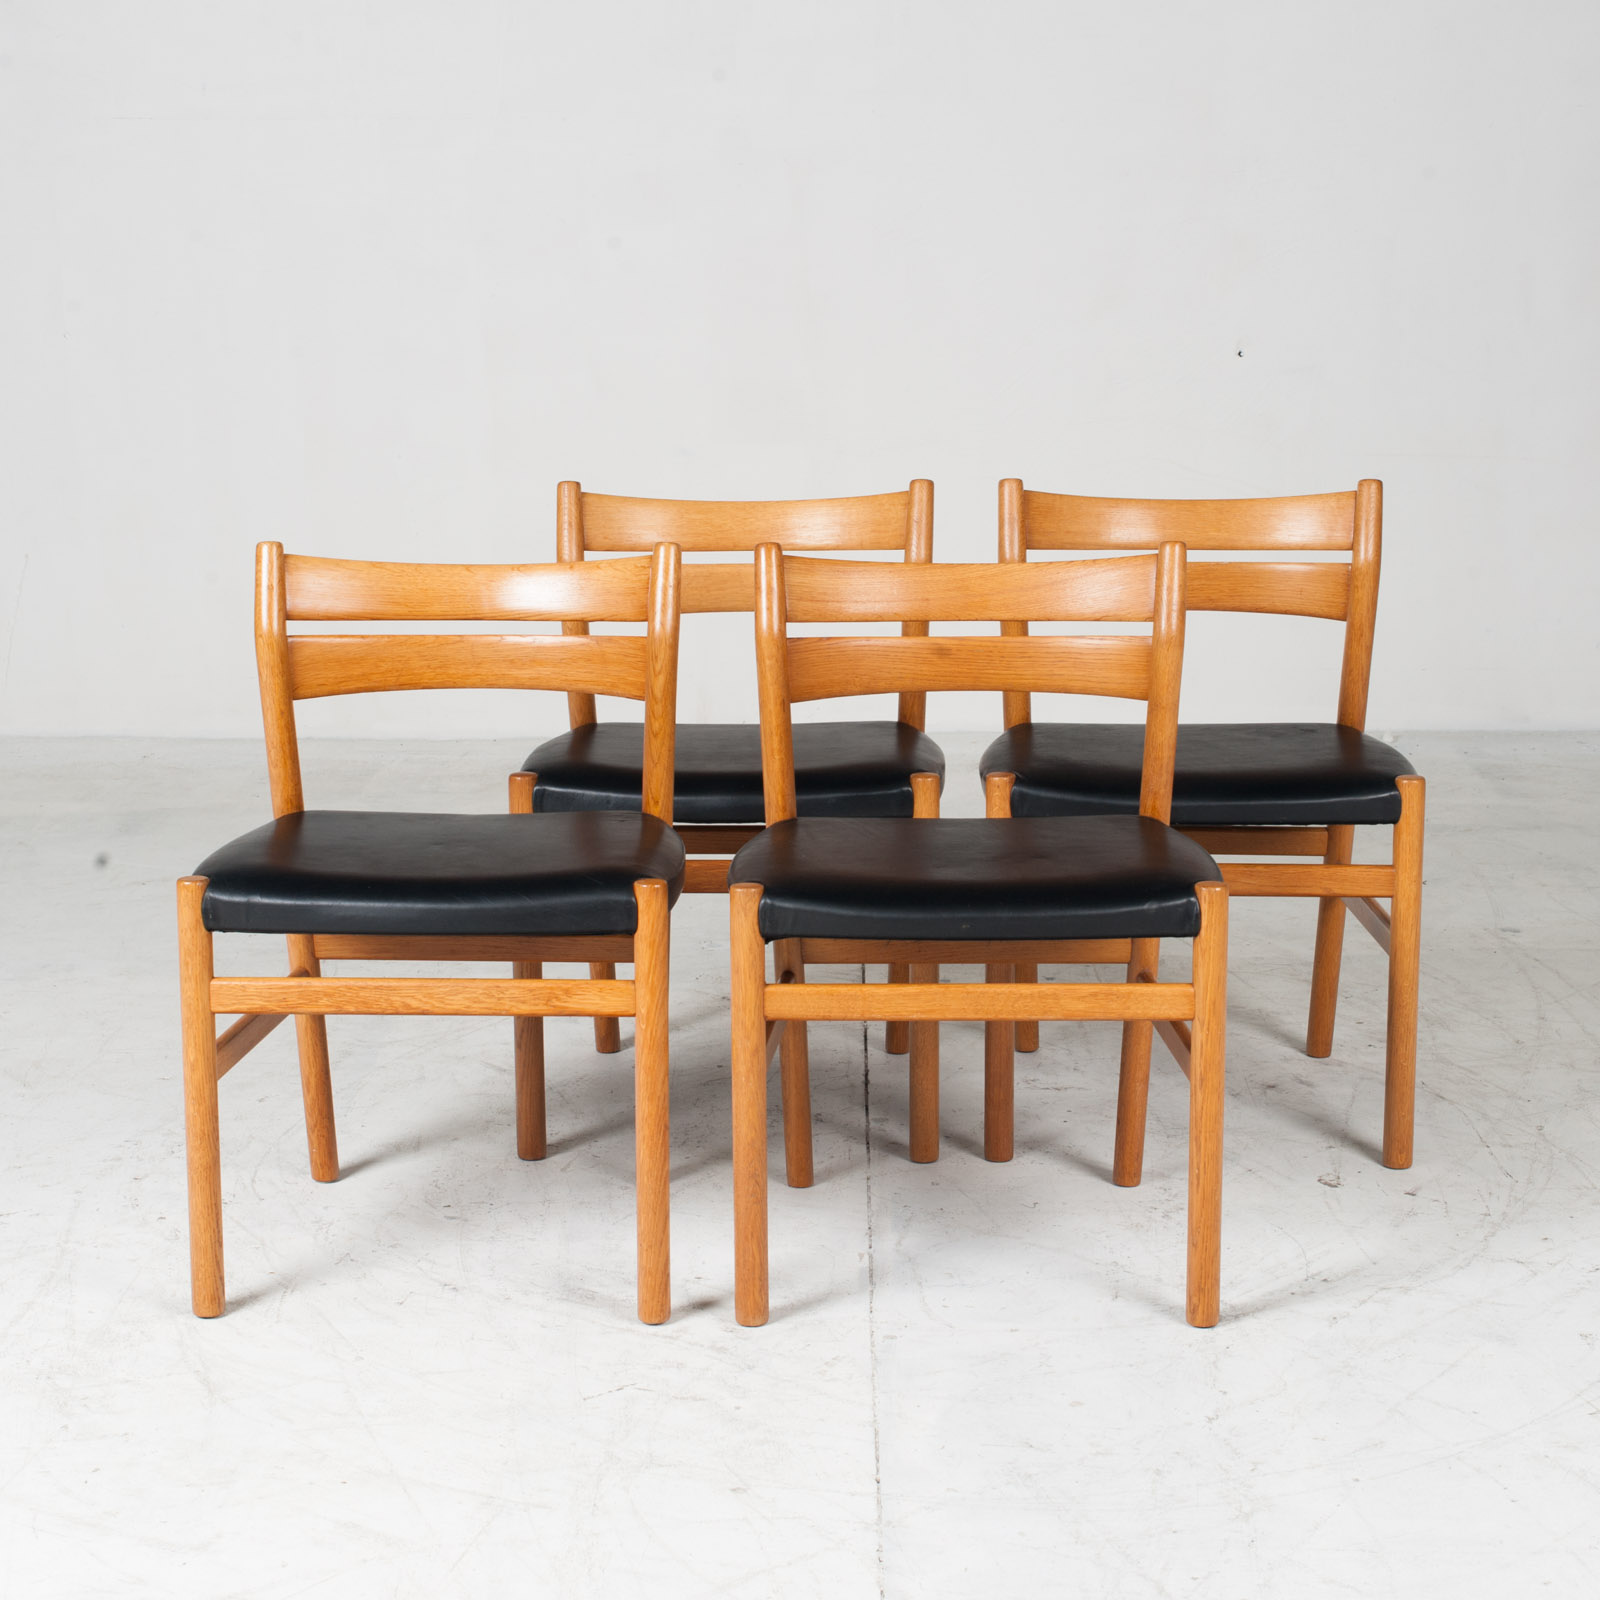 Set Of 4 Oak Ladder Back Dining Chairs By Borge Morgensen 1960s Denmark18